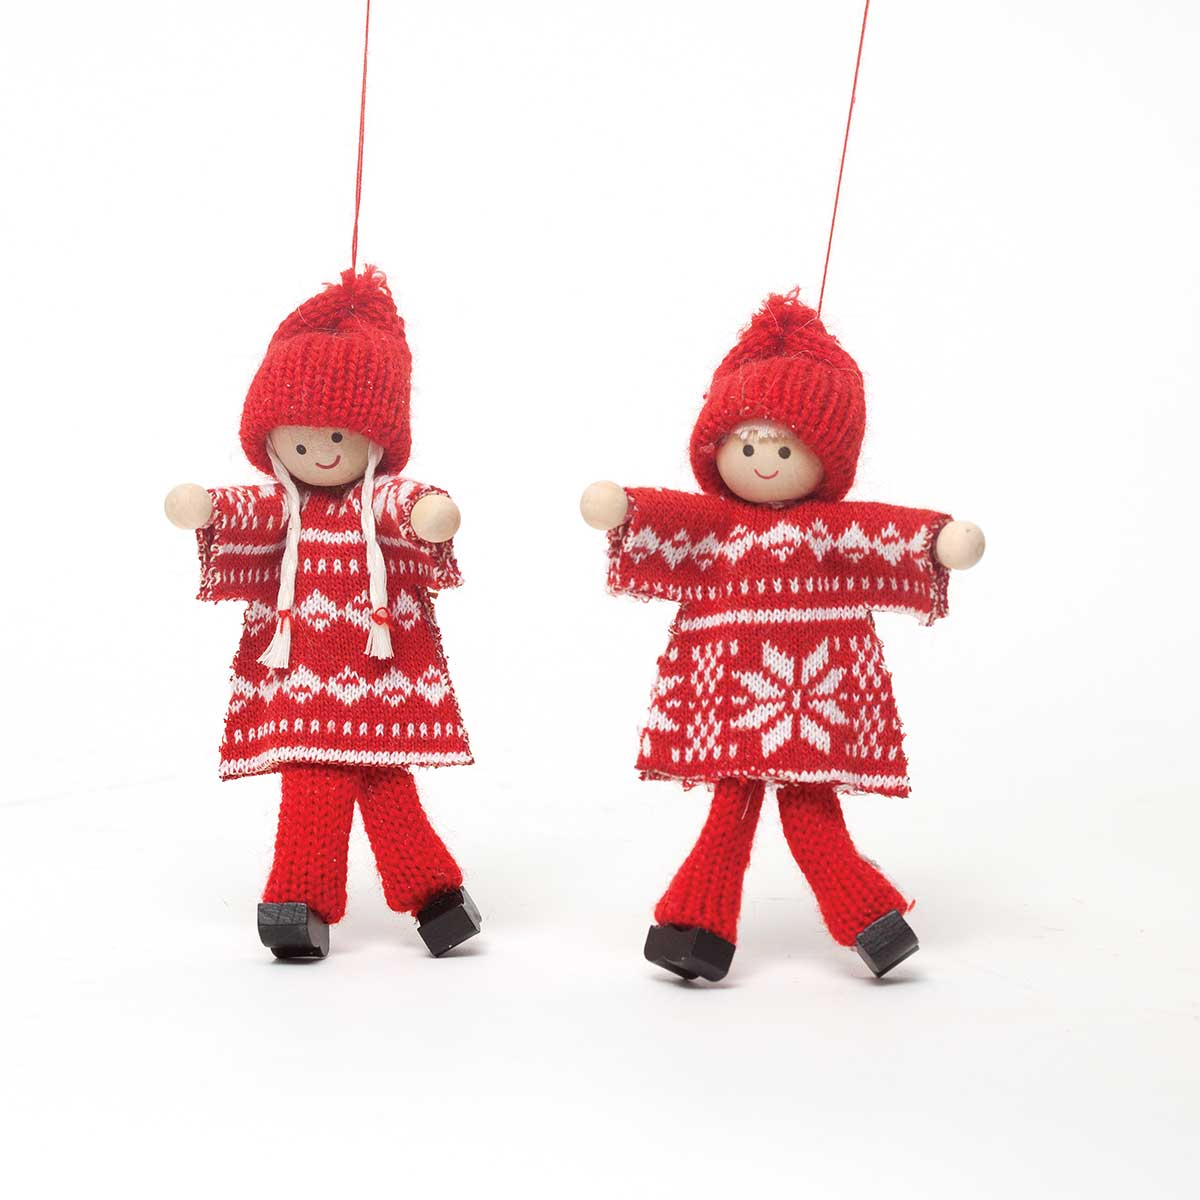 RED SNOWFLAKE SWEATER KID